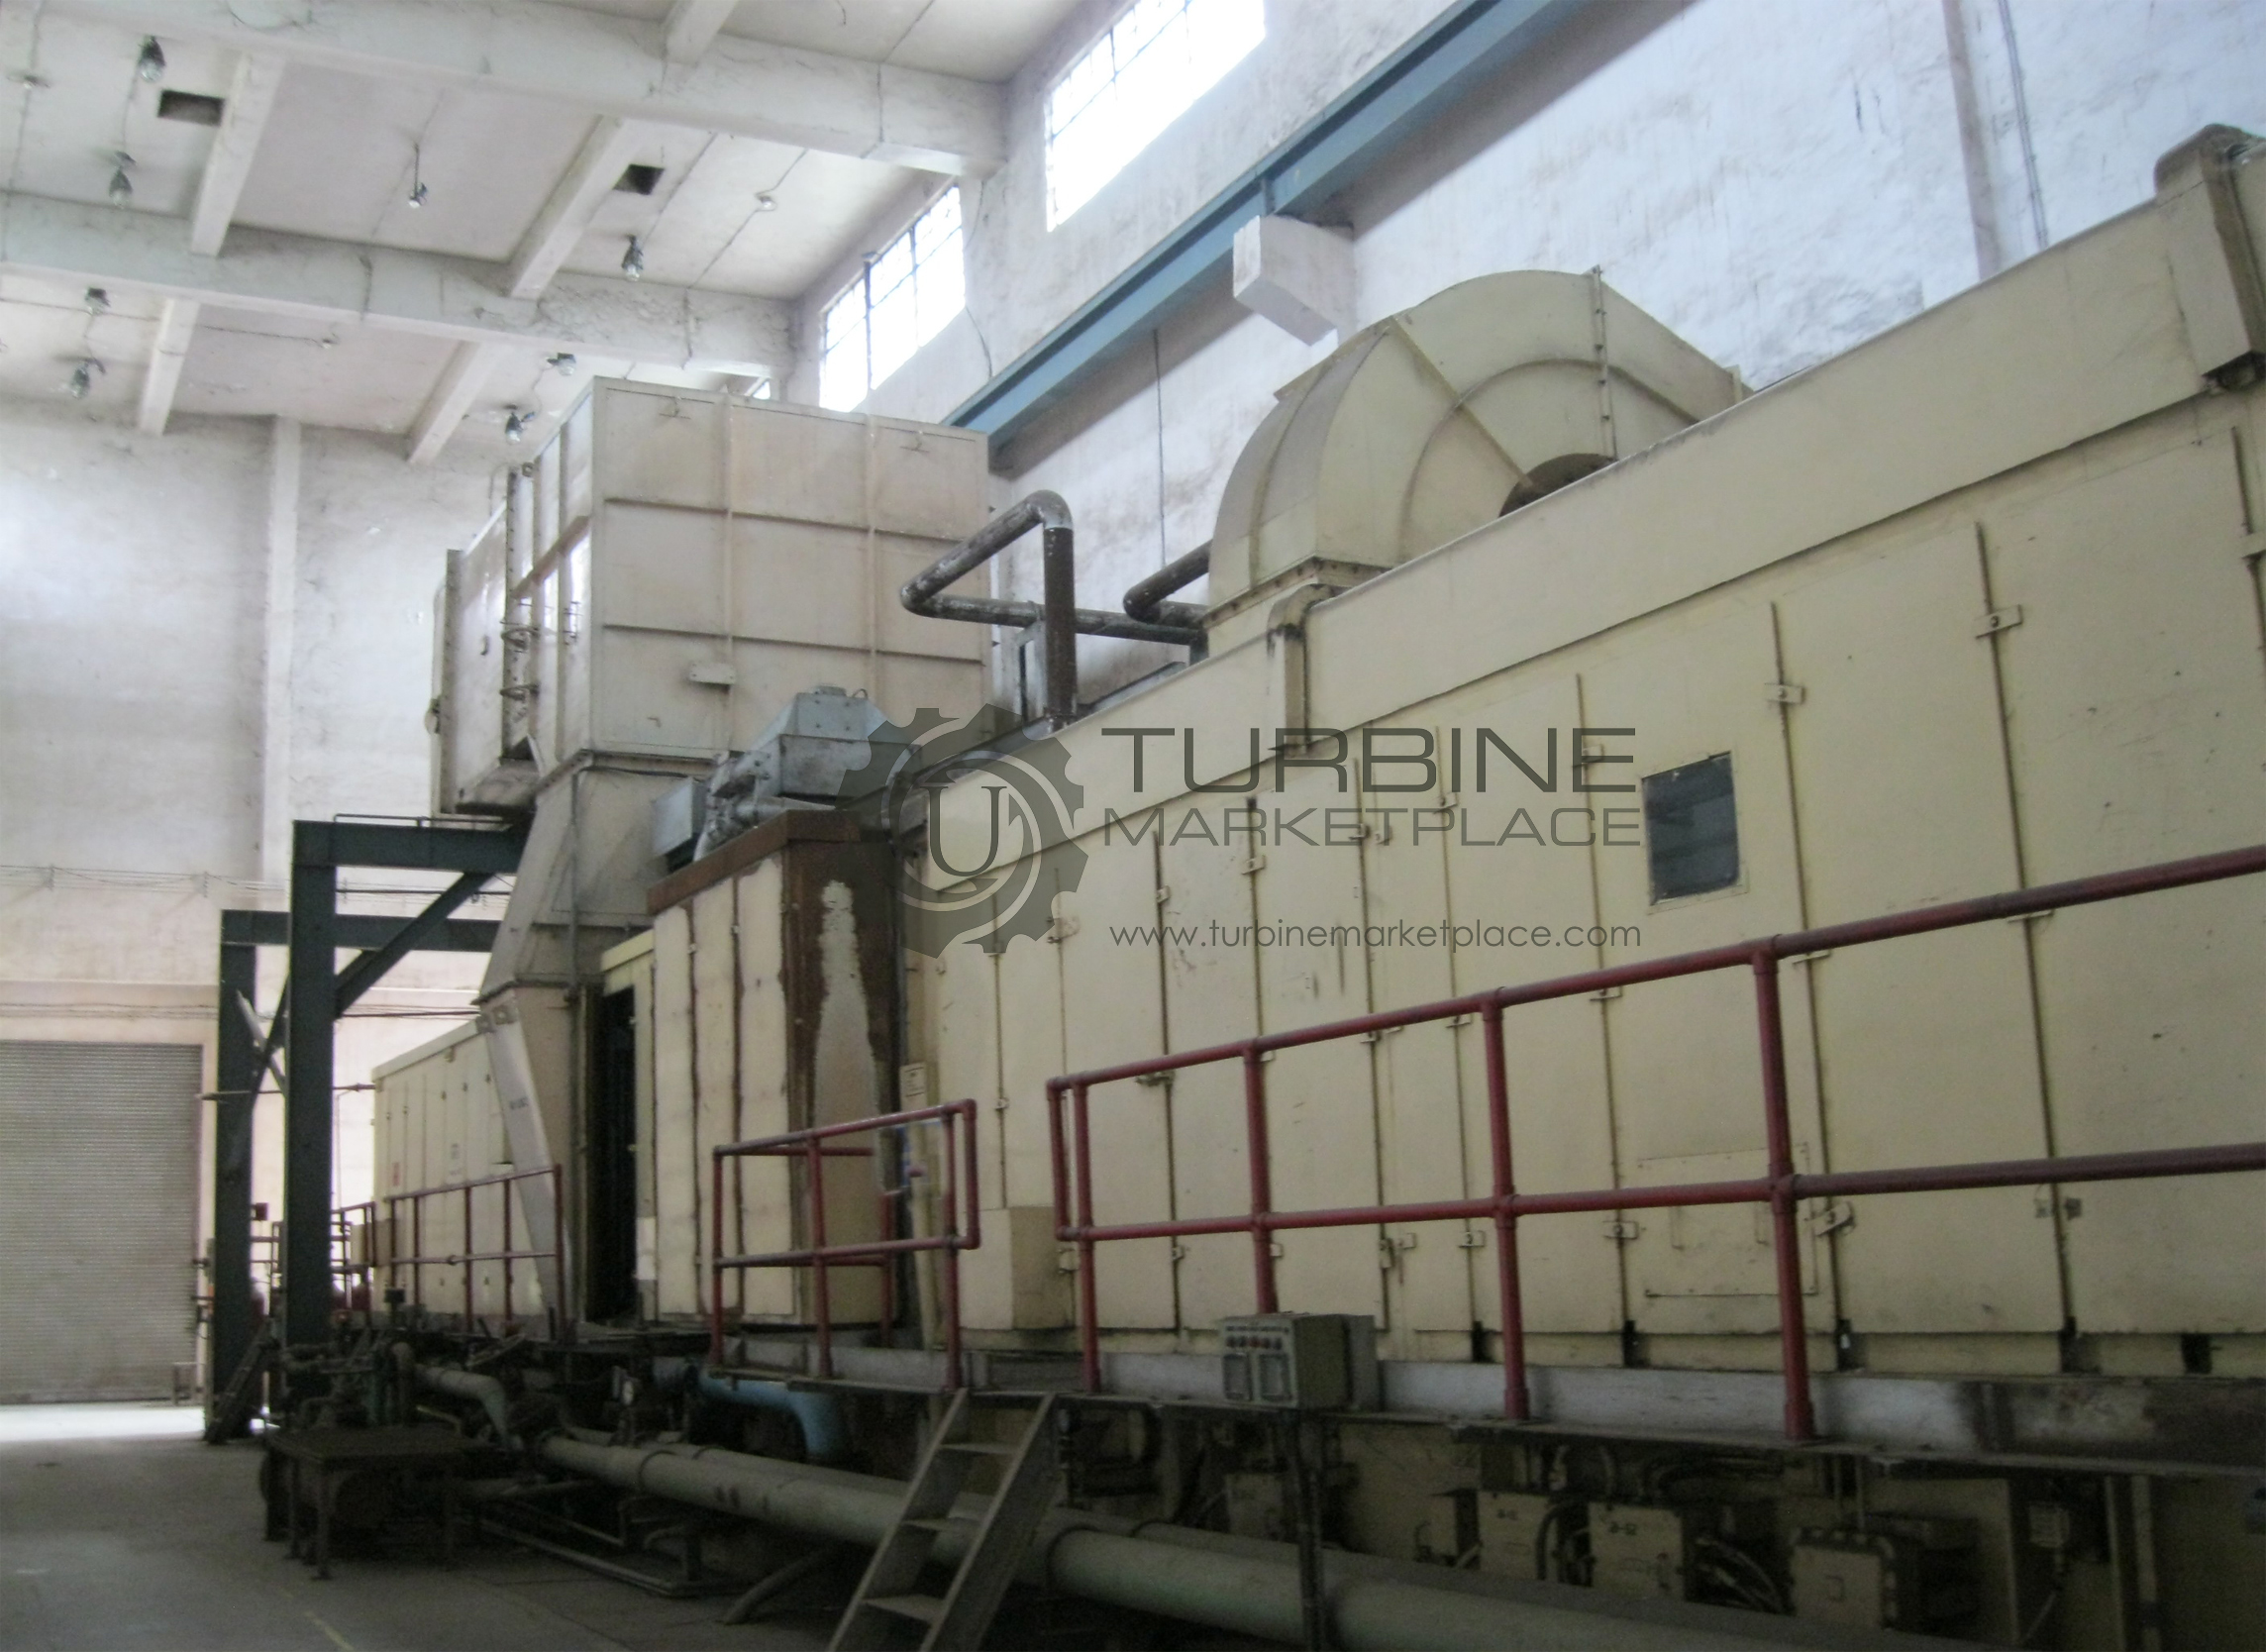 2 x FR6B (2 x 32.5MW) TURBINEs FOR SALE - UPRATED TO PG6581 WITH MK6 CONTROLS